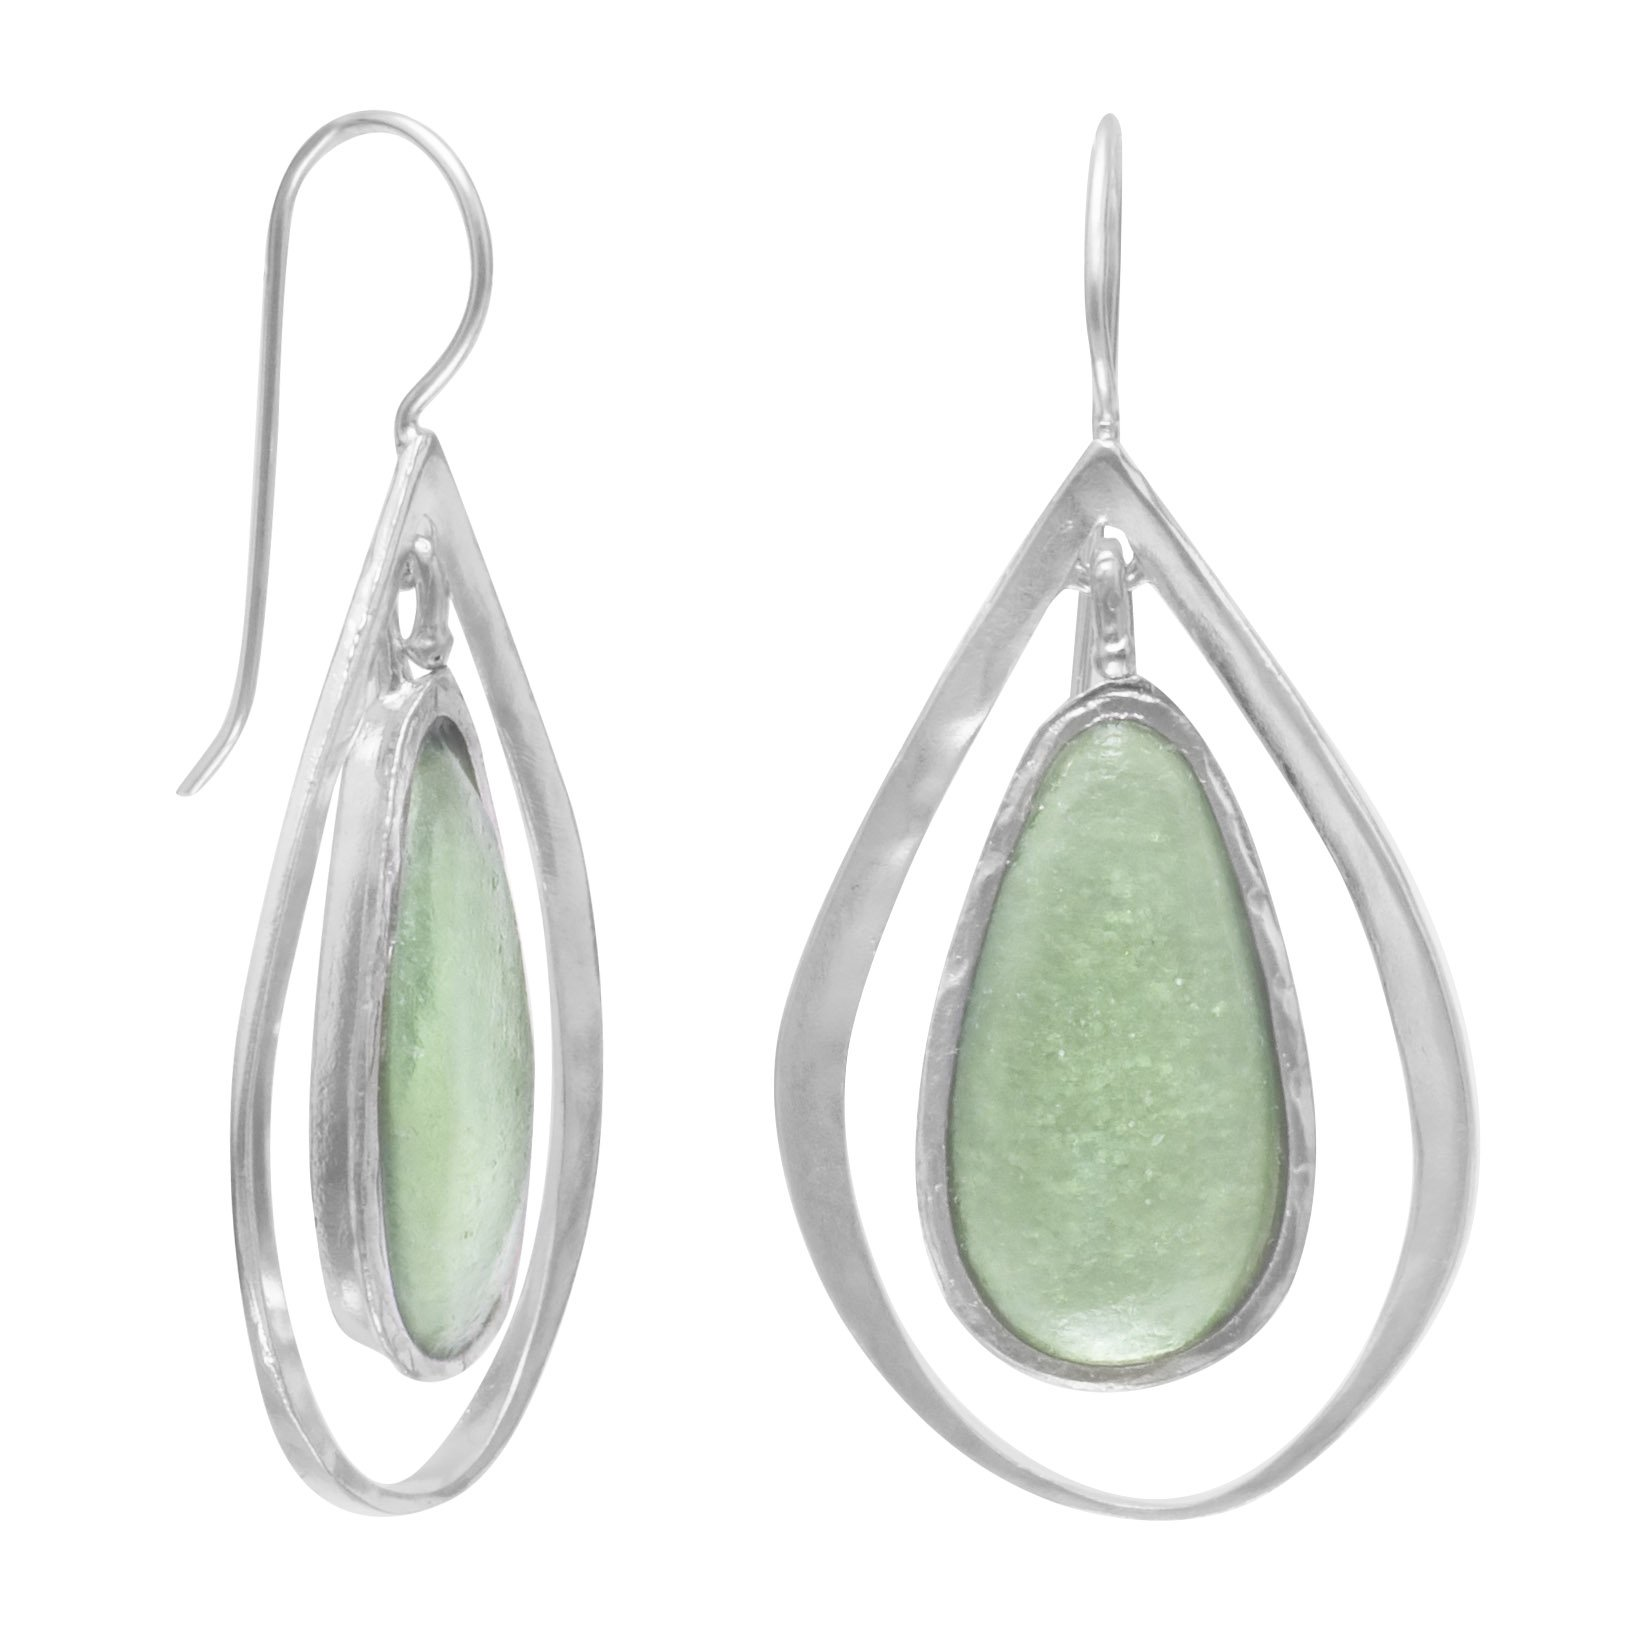 Ancient Roman Glass Sterling Silver Earrings on French Wire, 1-1/2 inch long